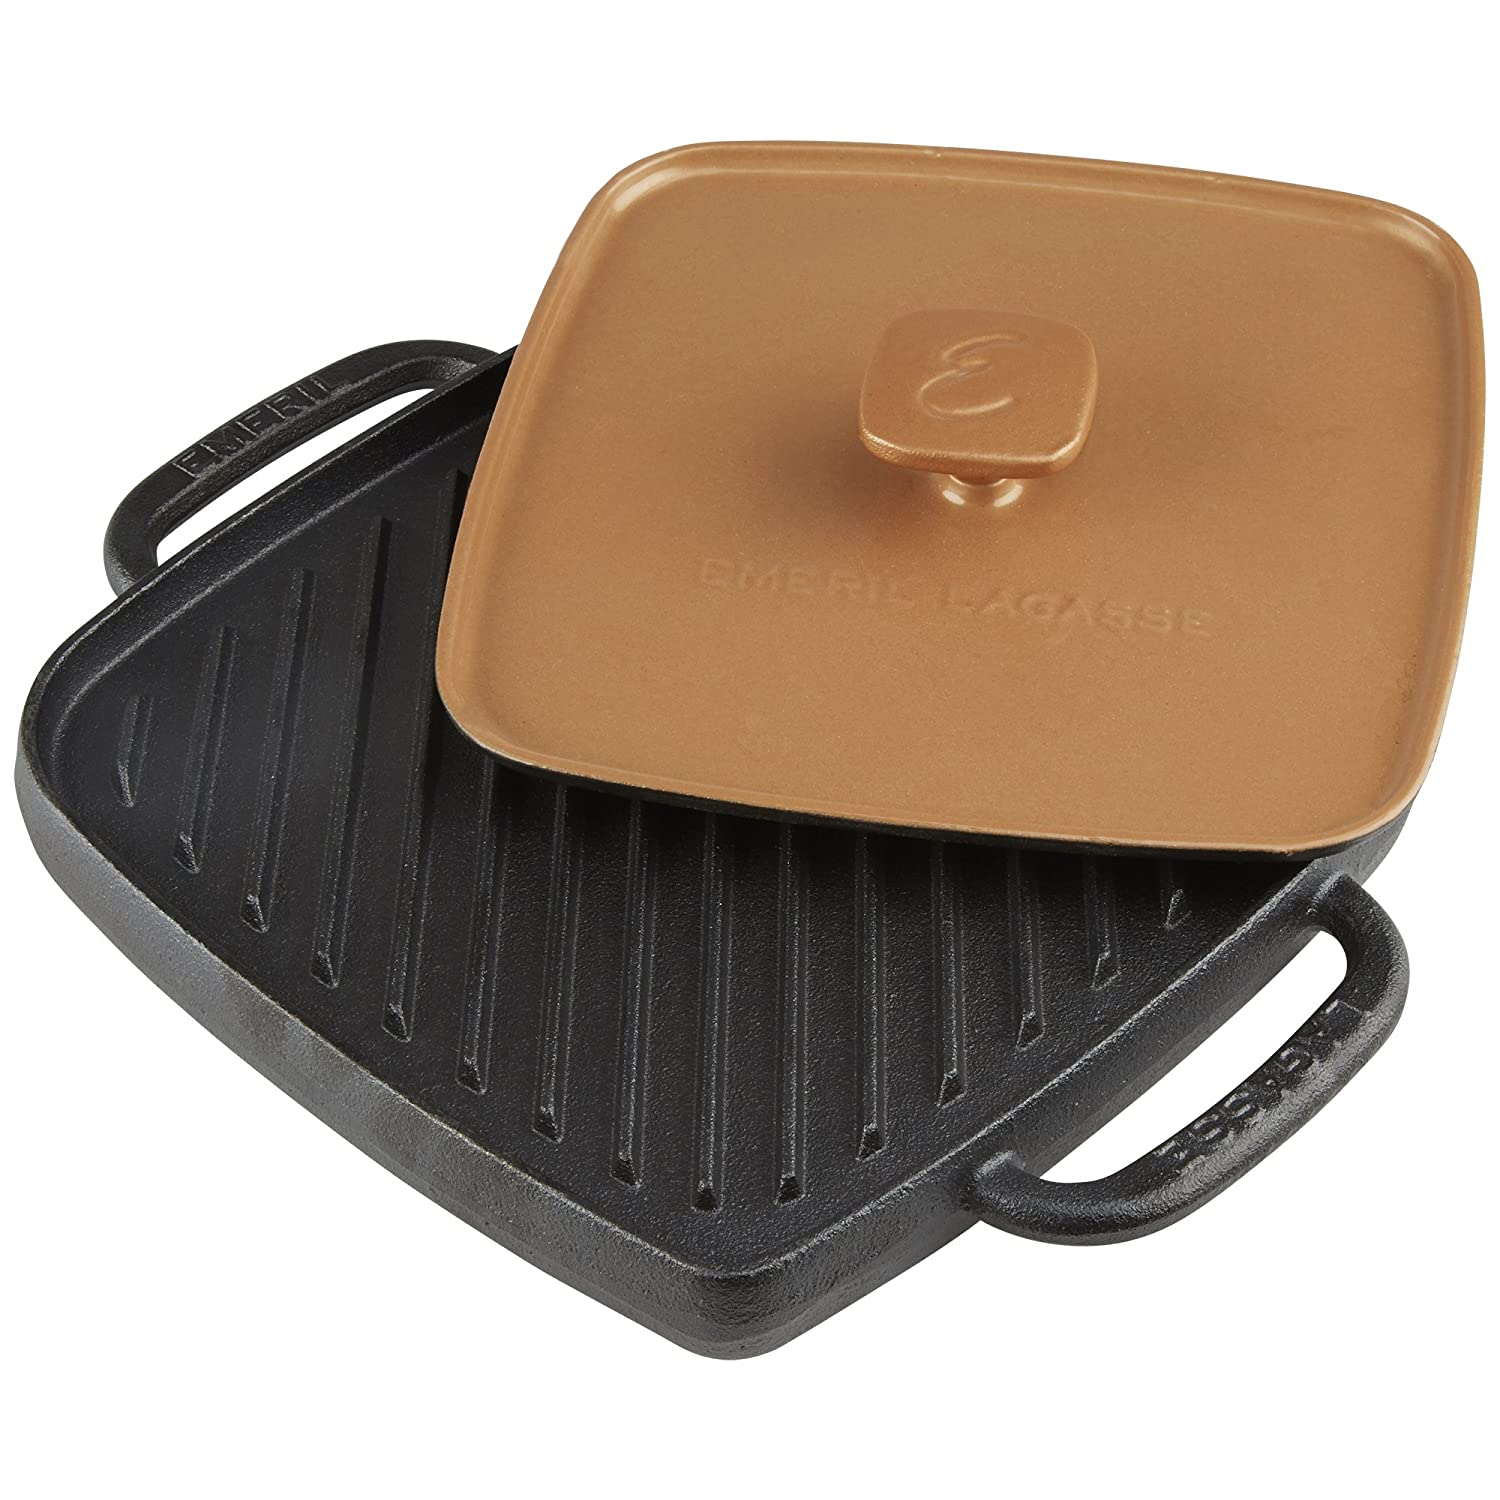 Emeril Lagasse 63141 Pre-Seasoned Cast Iron Single Burner Reversible Grill Griddle with Large Grill Press, Black, Copper